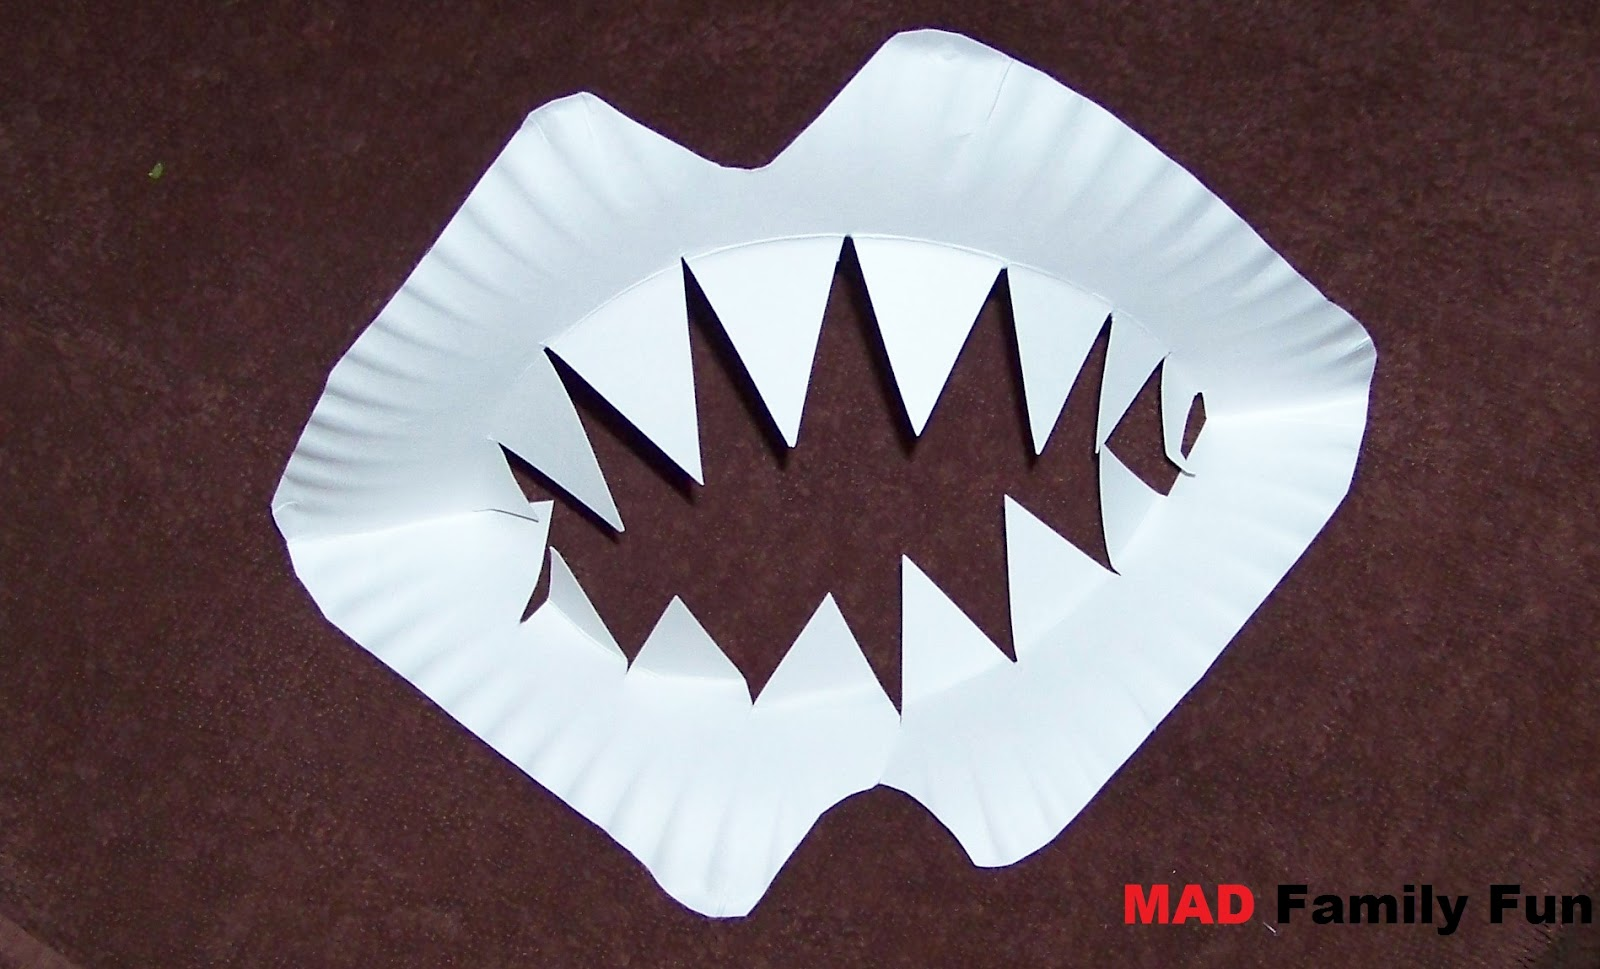 MAD Family Fun: Make your own shark teeth